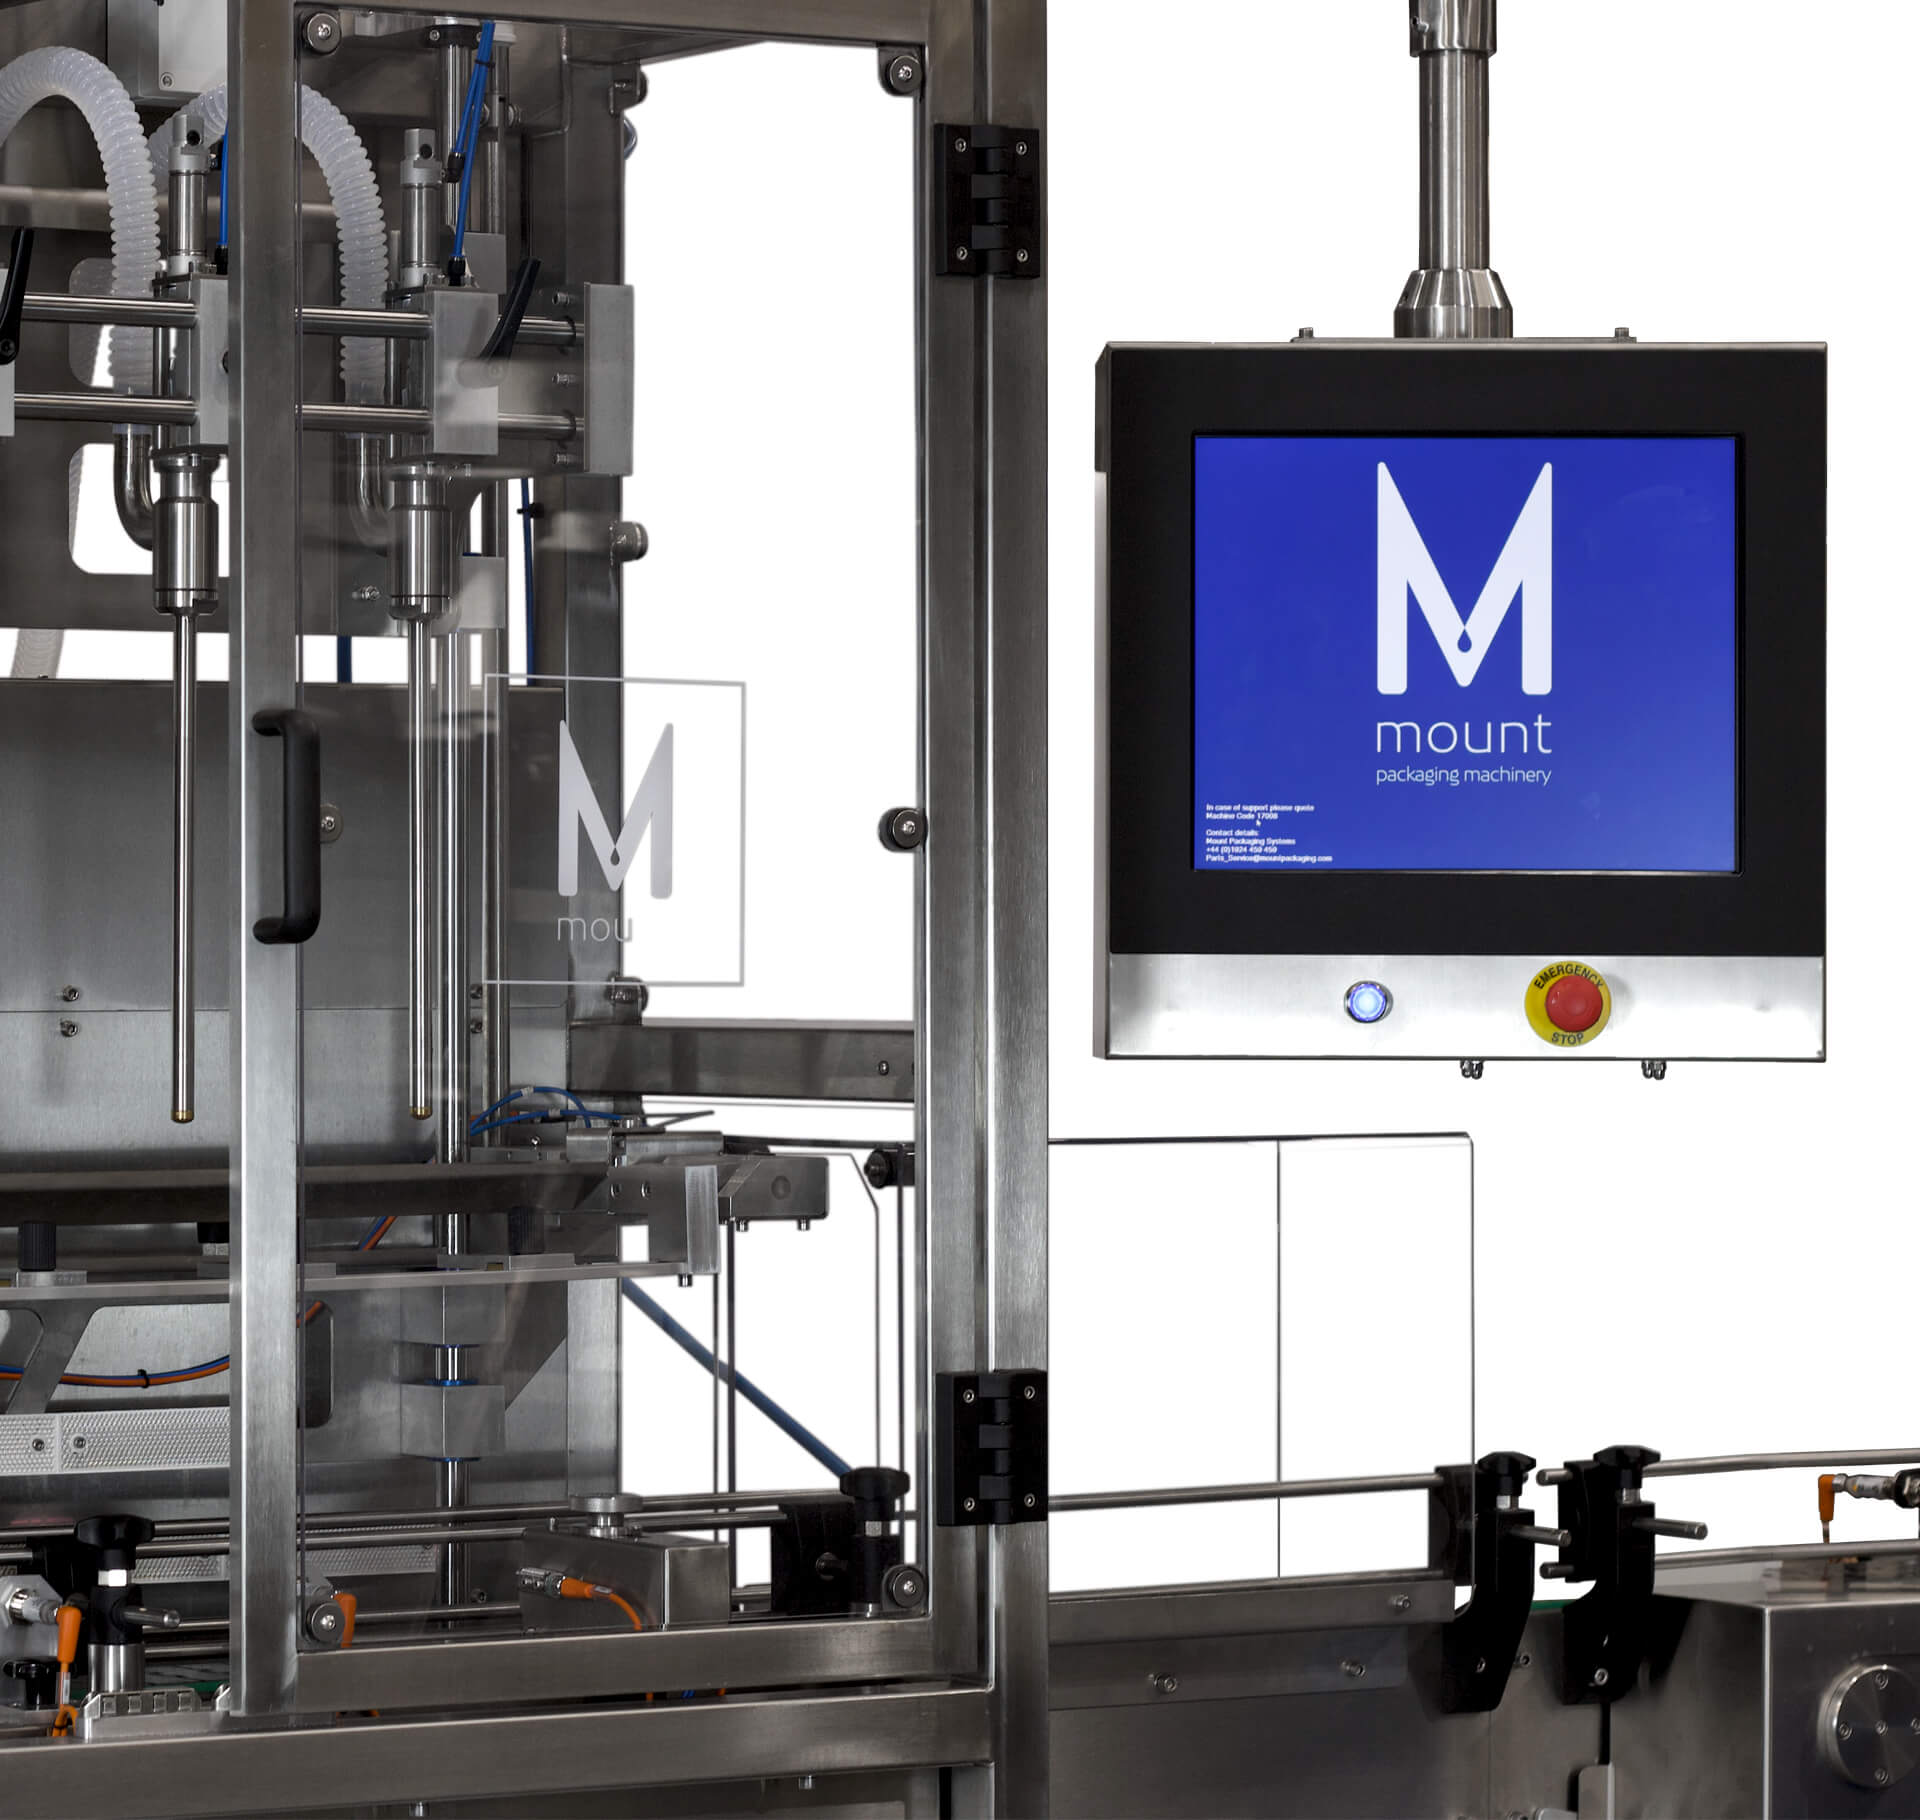 Mount Packaging - About Mount Packaging Machinery